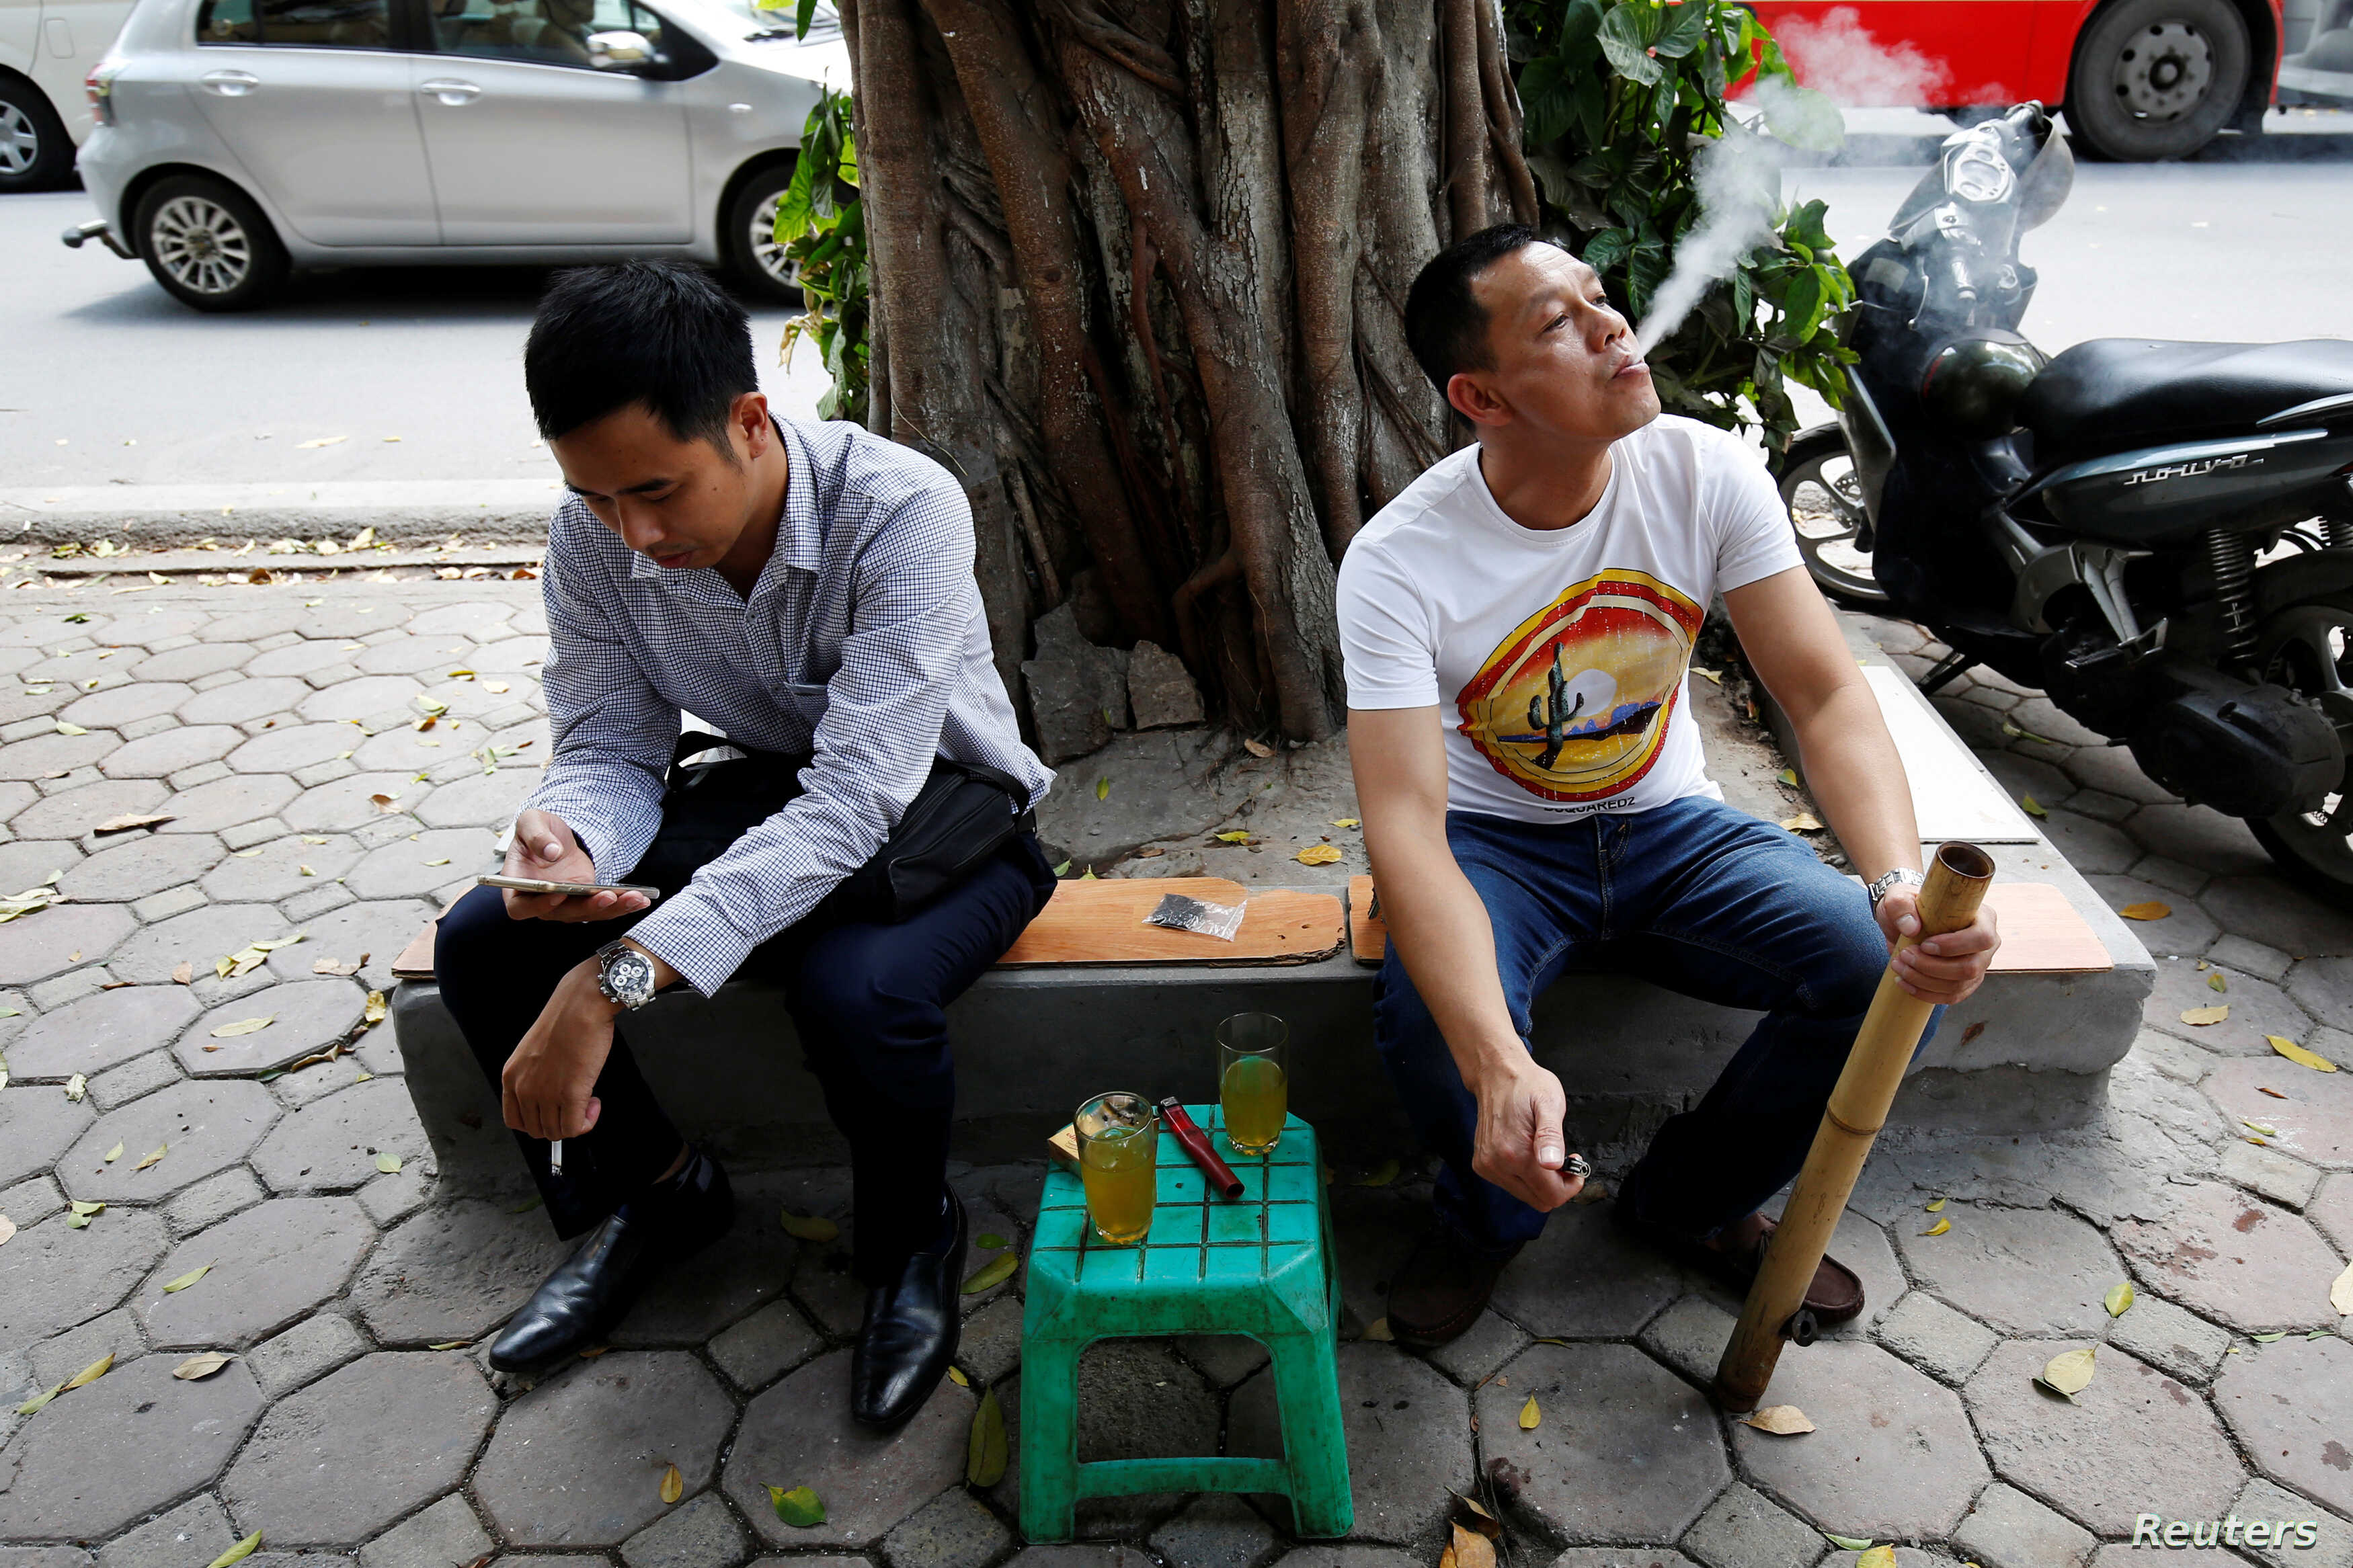 Vietnam Seeks Ways to Snuff Out Cigarette Smoking | Voice of America